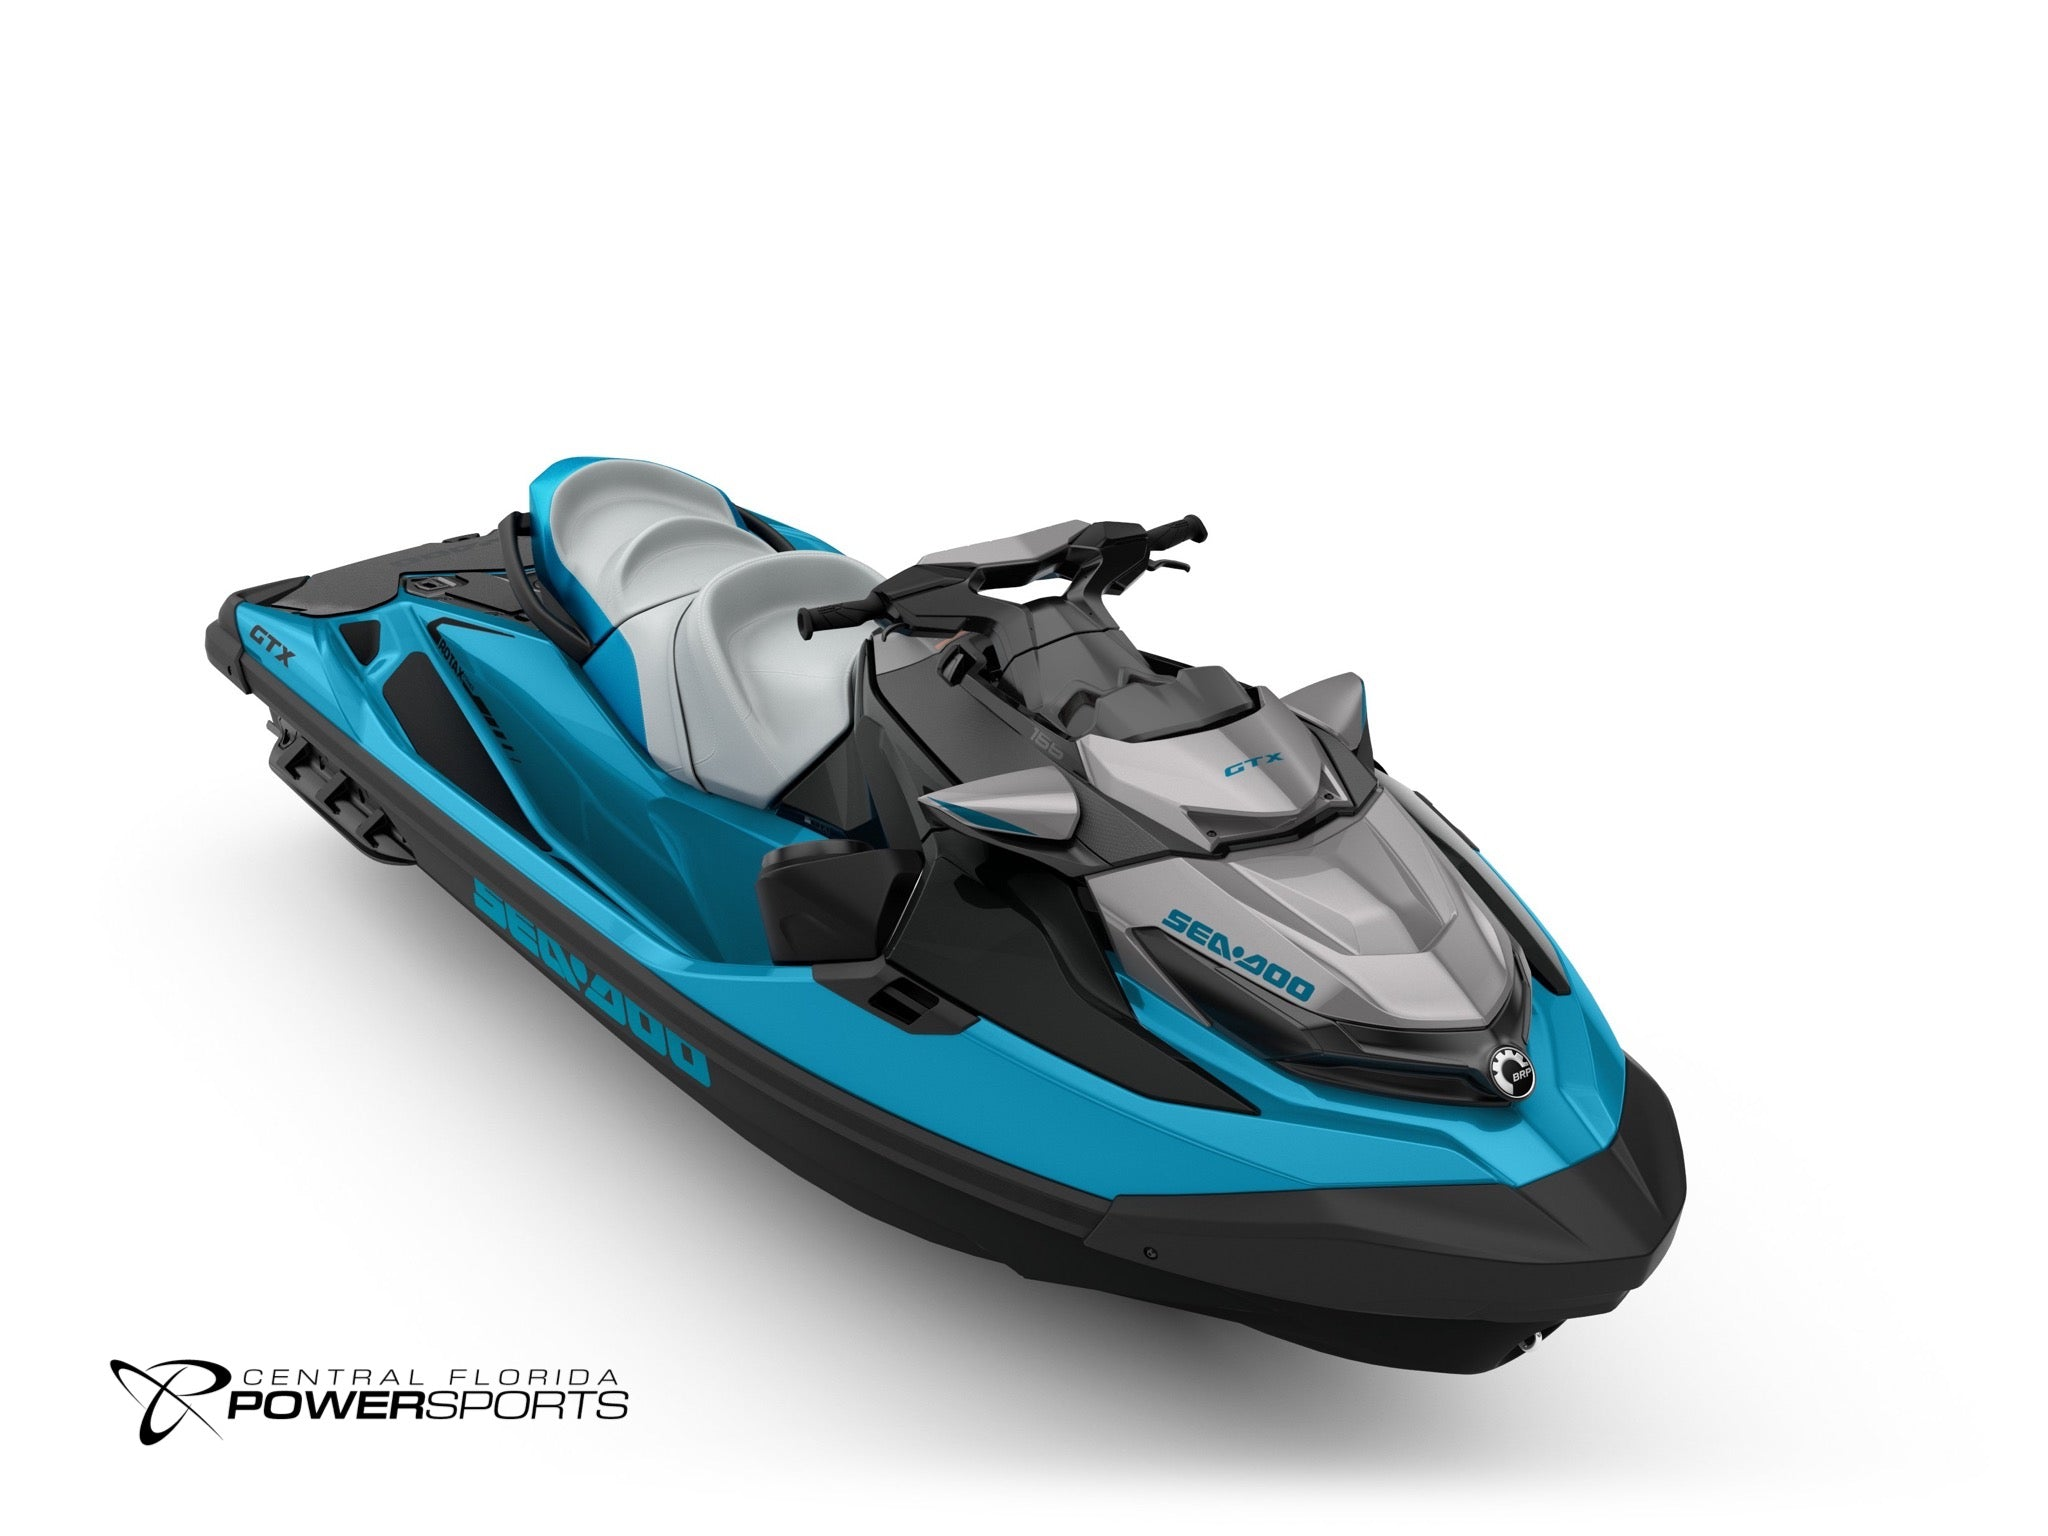 Seadoo Prices >> Lowest Prices on 2018 Sea-Doo GTX 155 For Sale Kissimmee, FL - Central Florida PowerSports